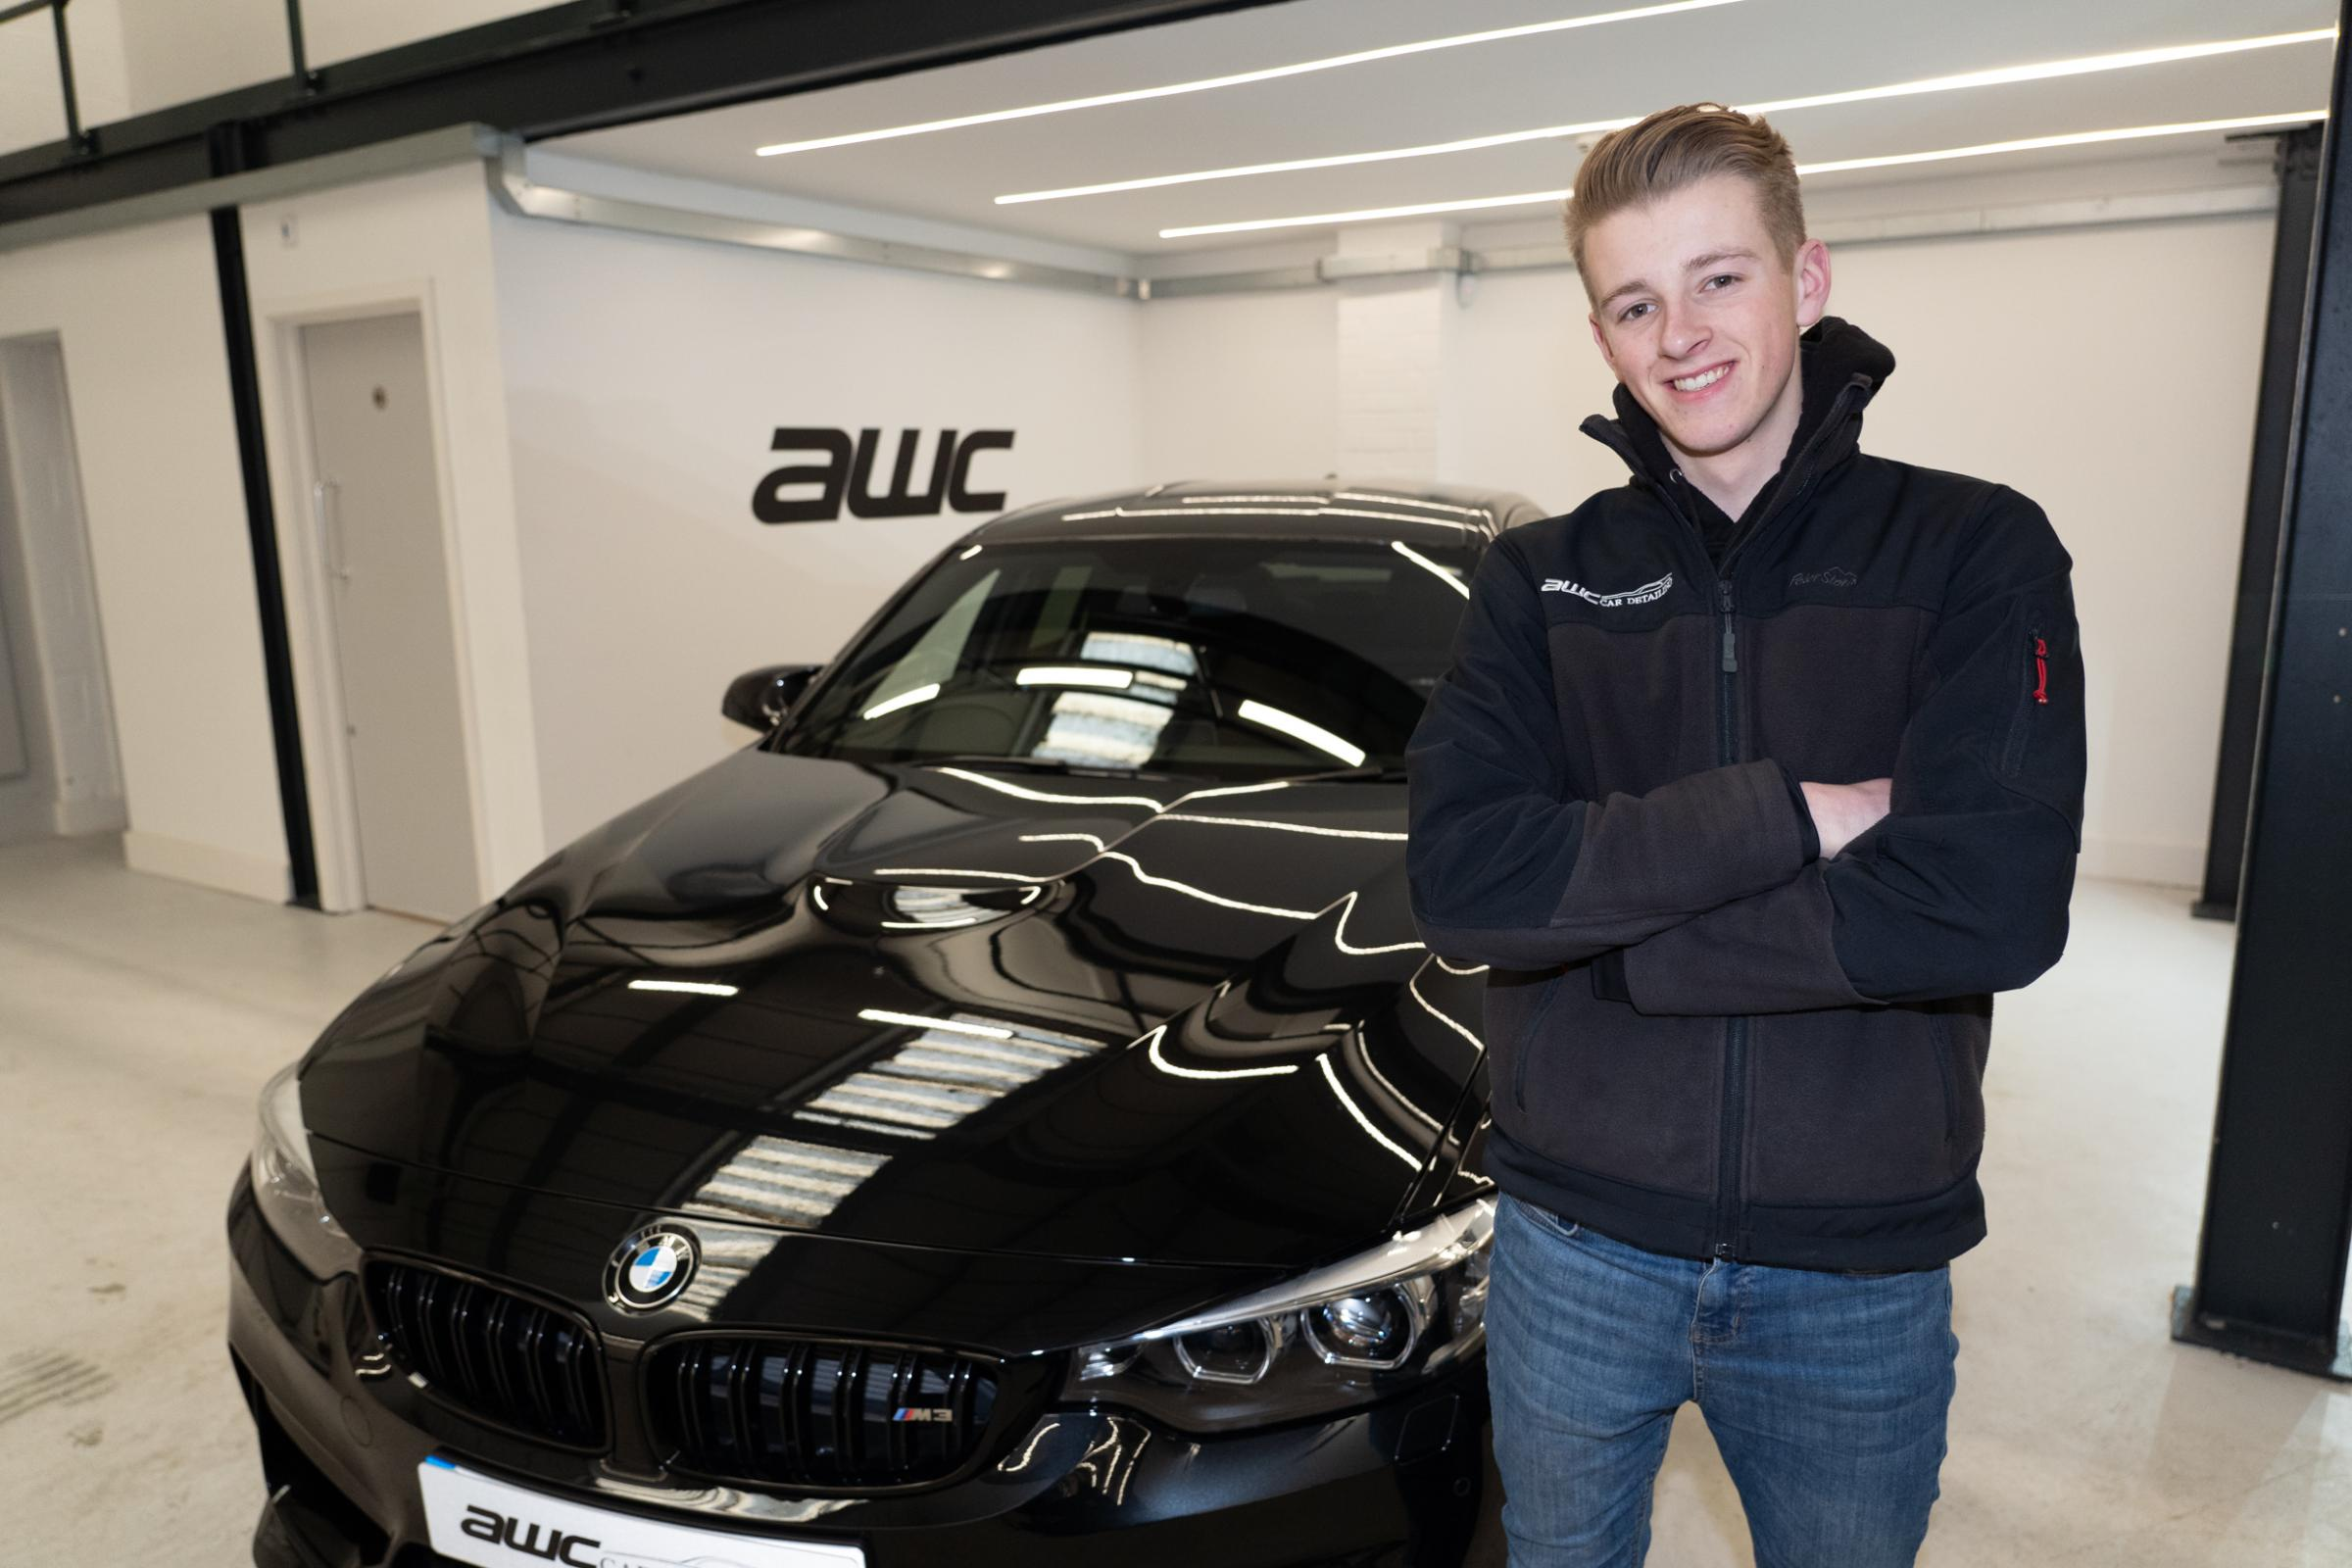 Entrepreneur - Alex Chapman, 19, owner of thriving business AWC Car Detailing